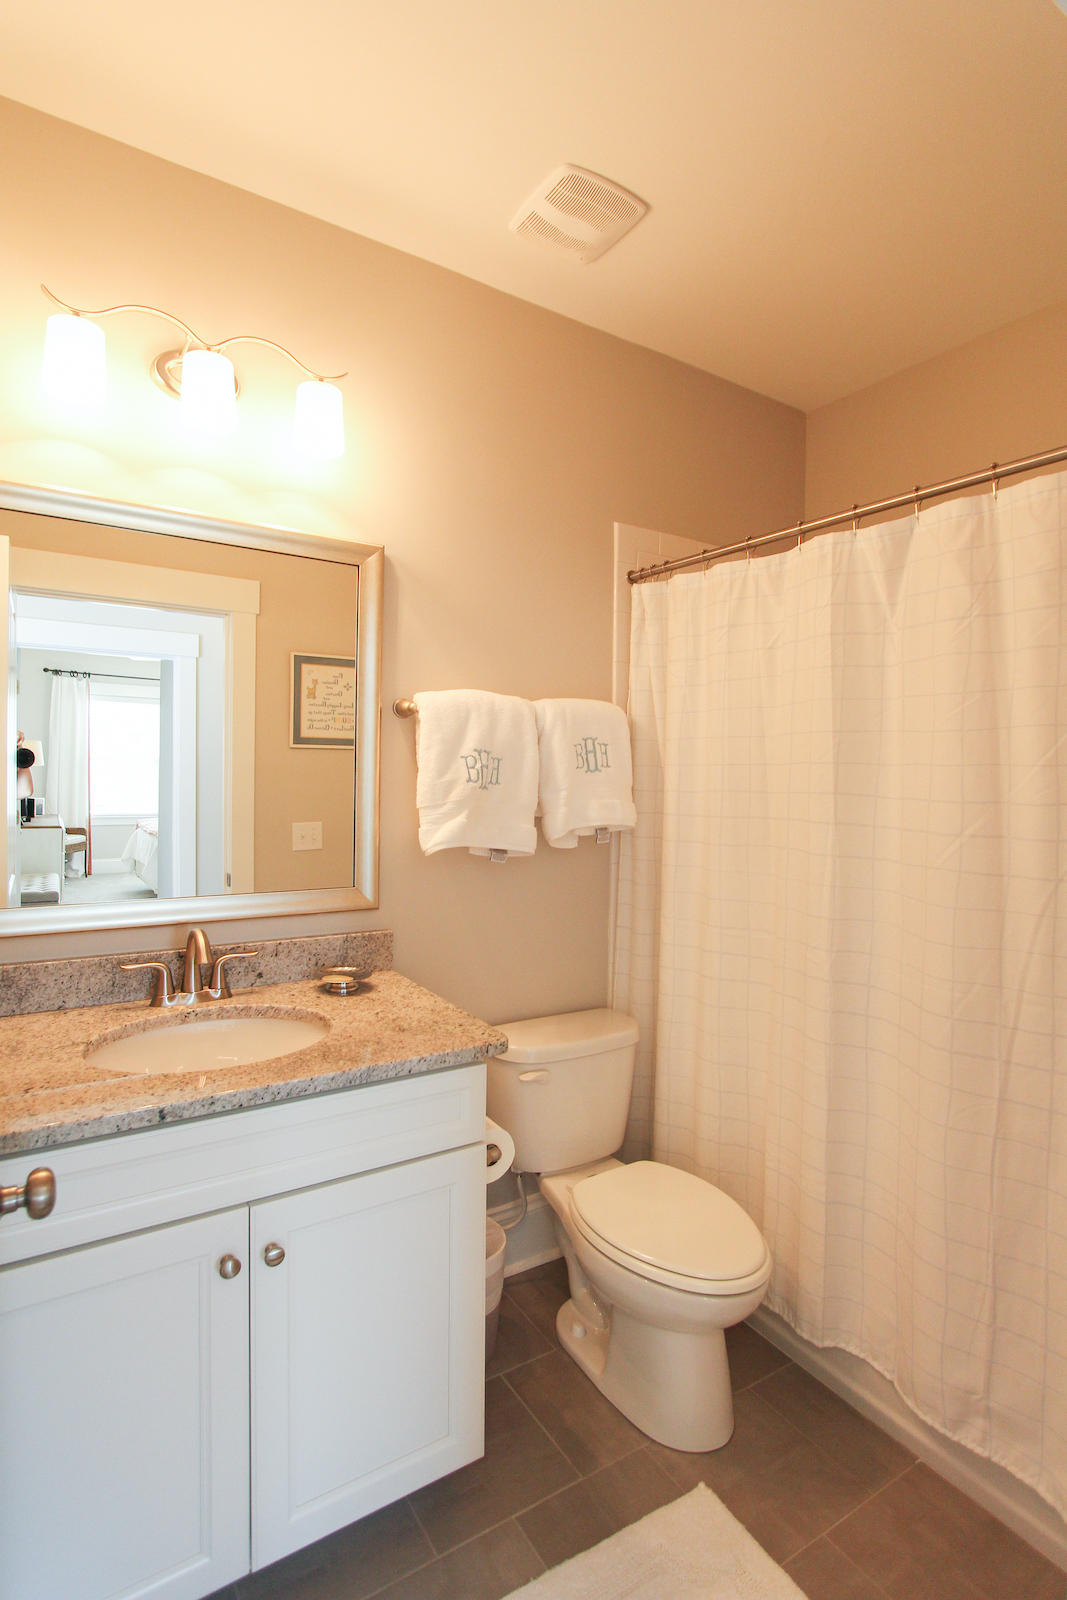 The Village at Stiles Point Homes For Sale - 706 Farm Cottage, Charleston, SC - 17